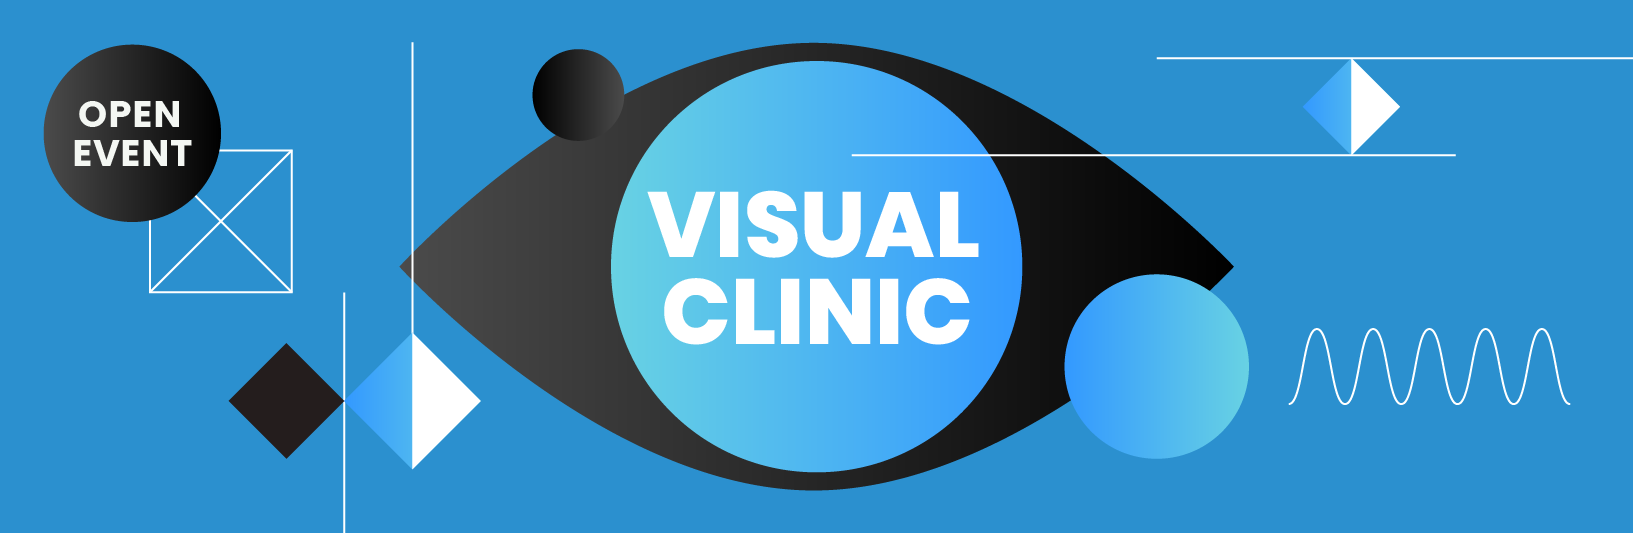 Visual Clinic